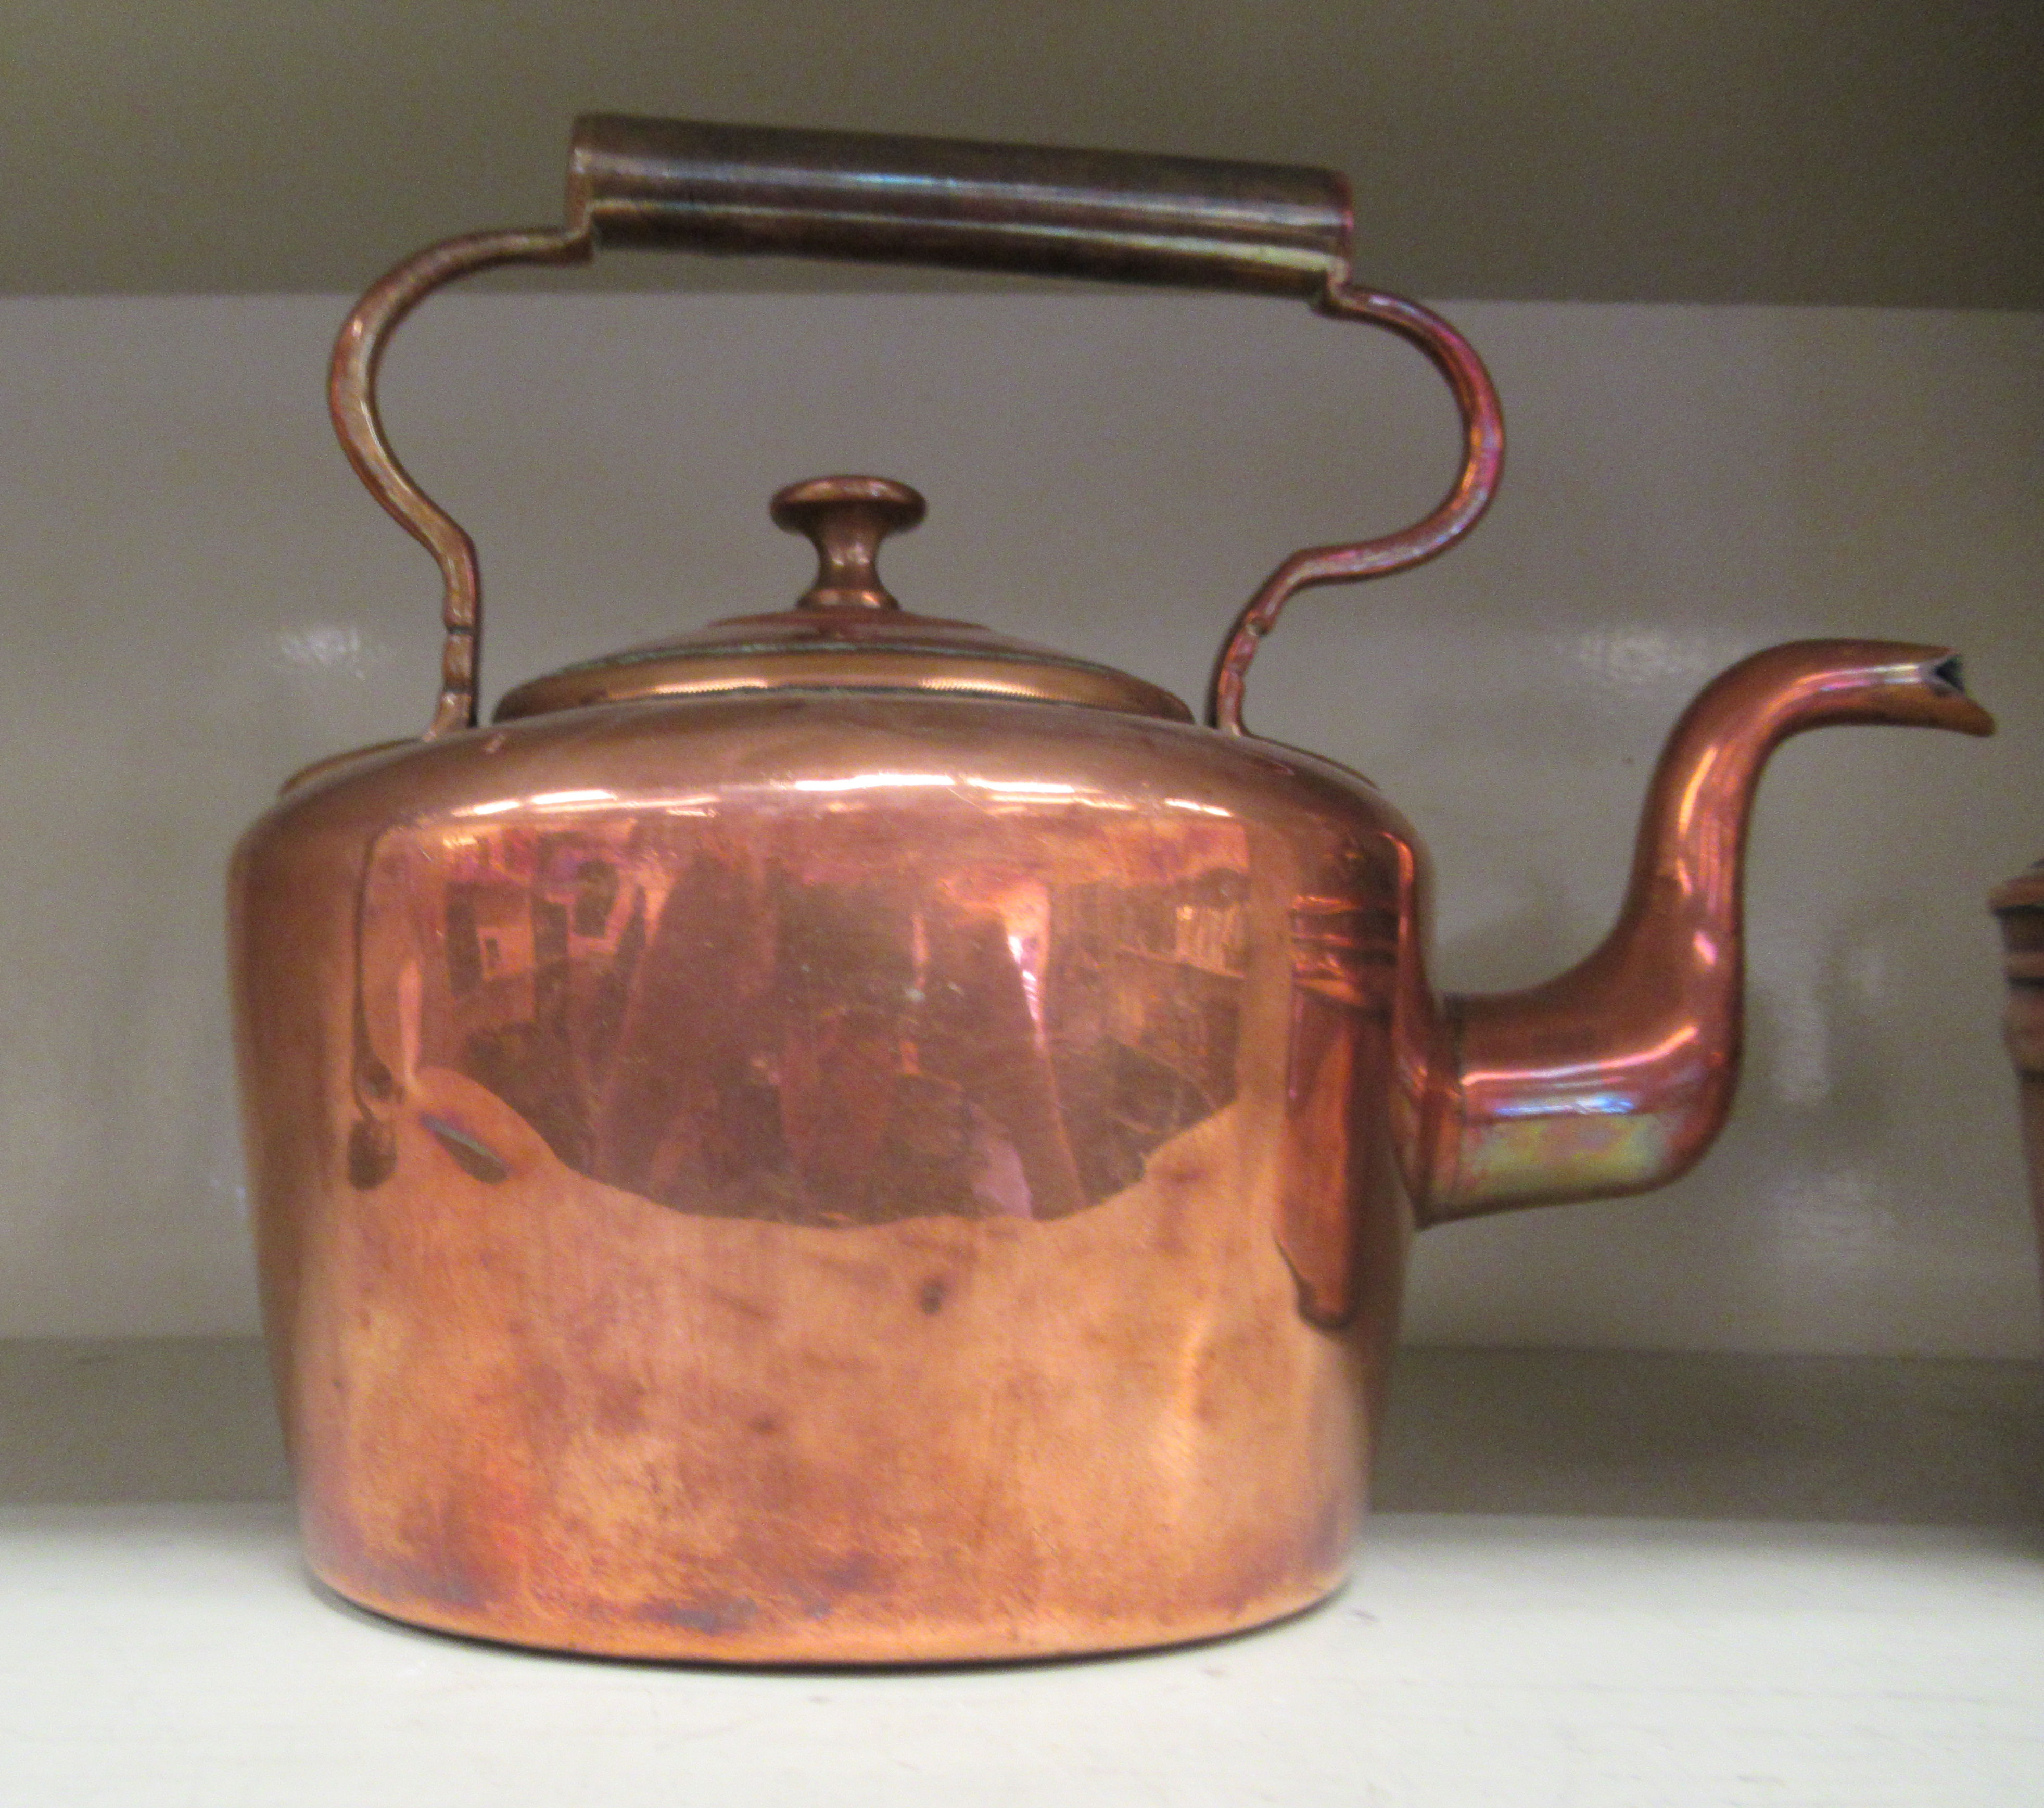 Two late Victorian copper kettles, each with a fixed top handle - Image 2 of 3